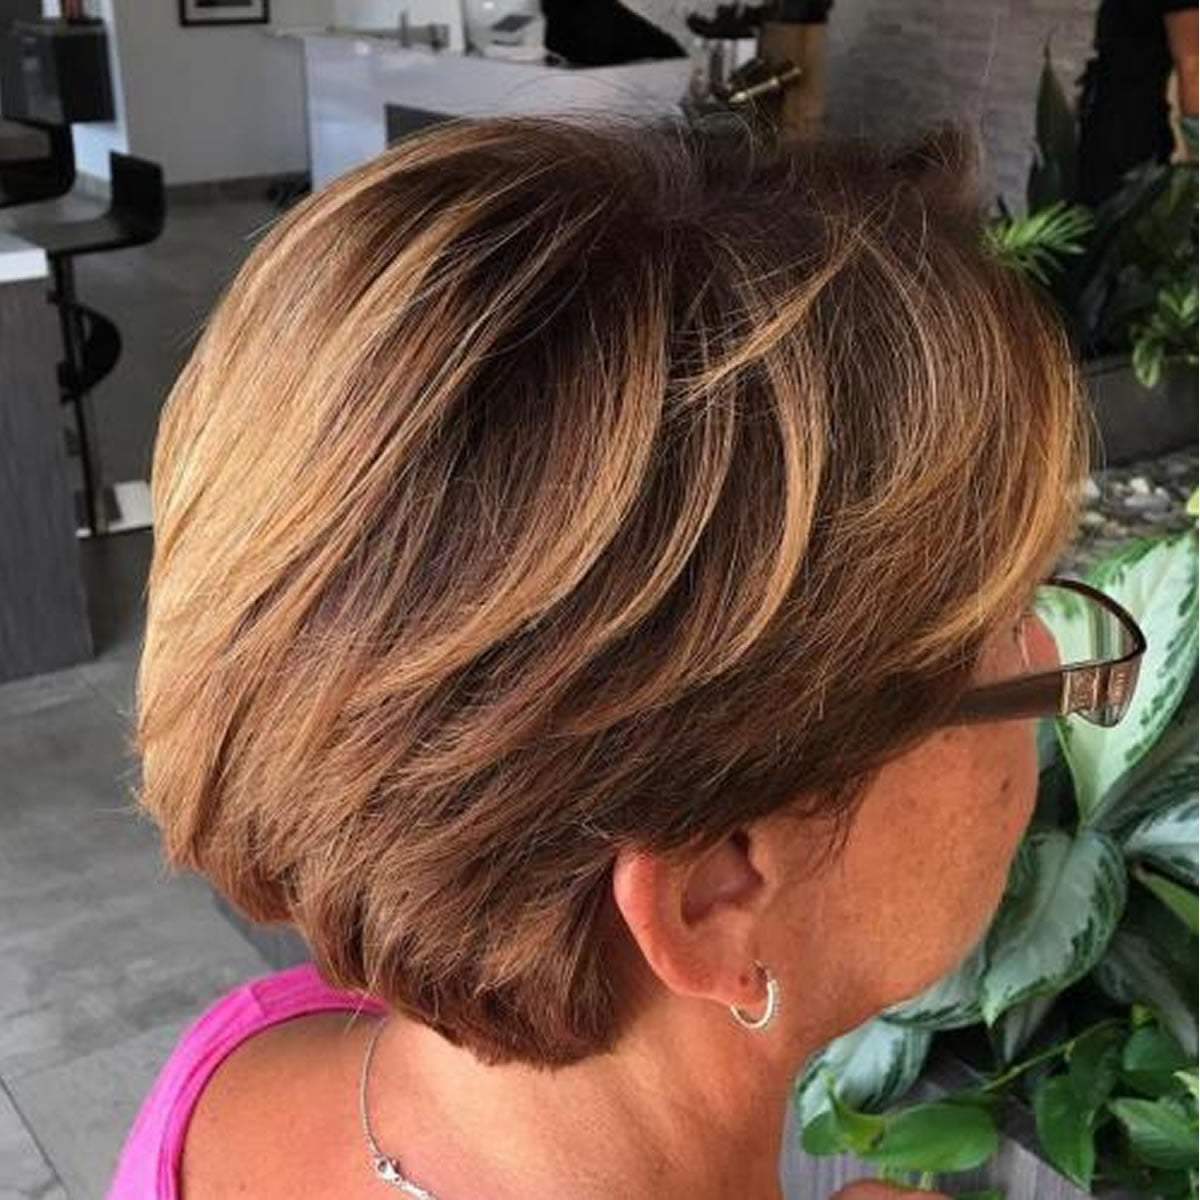 2020 Haircuts for Older women Over 50 - New Trend Hair ...